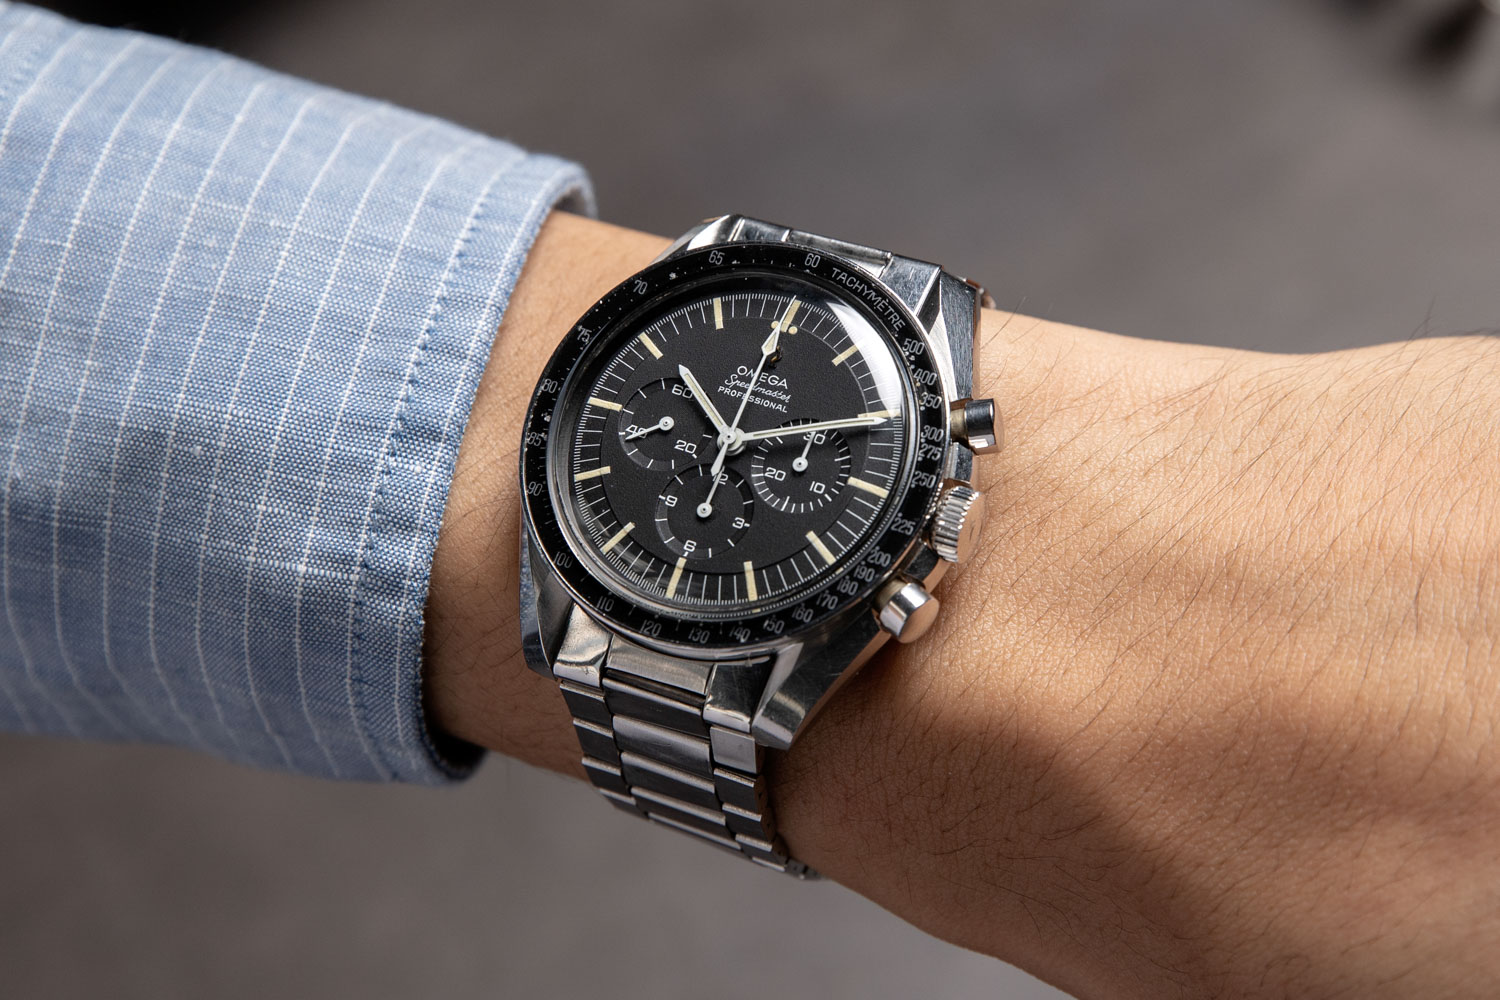 A ref. ST 105.012-67, seen here in a Le Centrale Boites case, one of the two case makers used by Omega for the Speedmaster at this time (©Revolution)